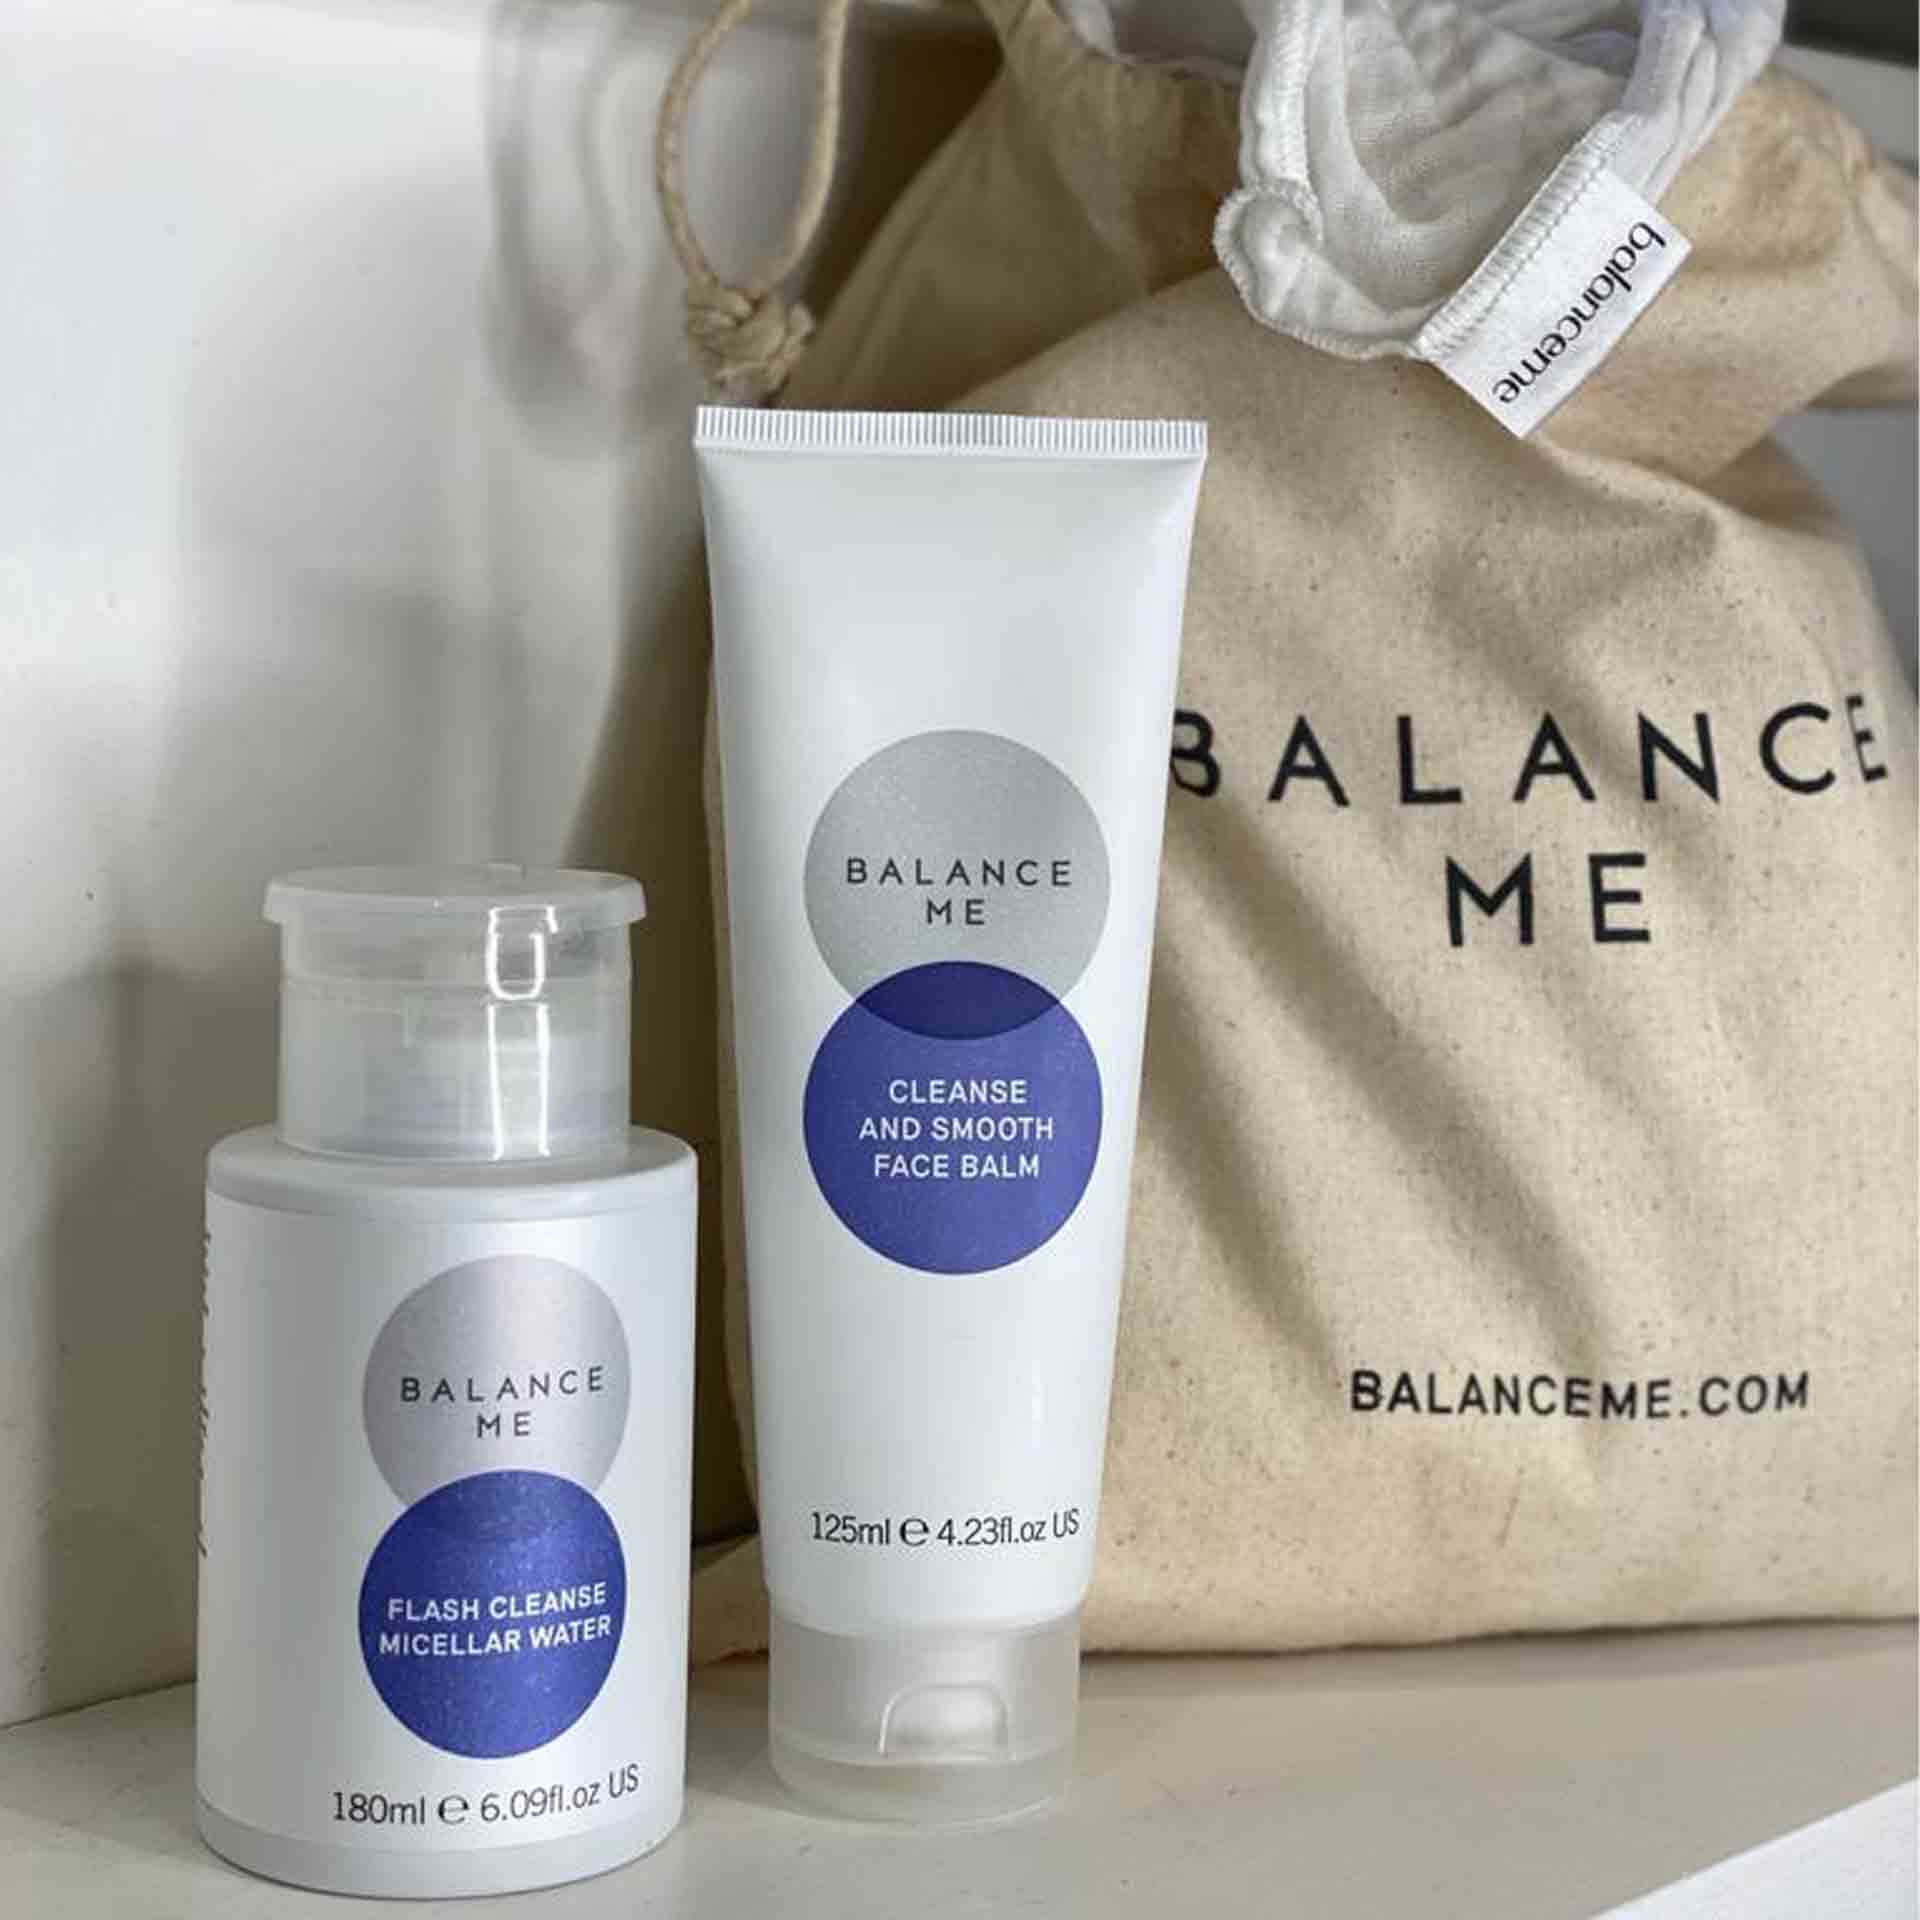 Cleanse and Smooth Face Balm 125ml